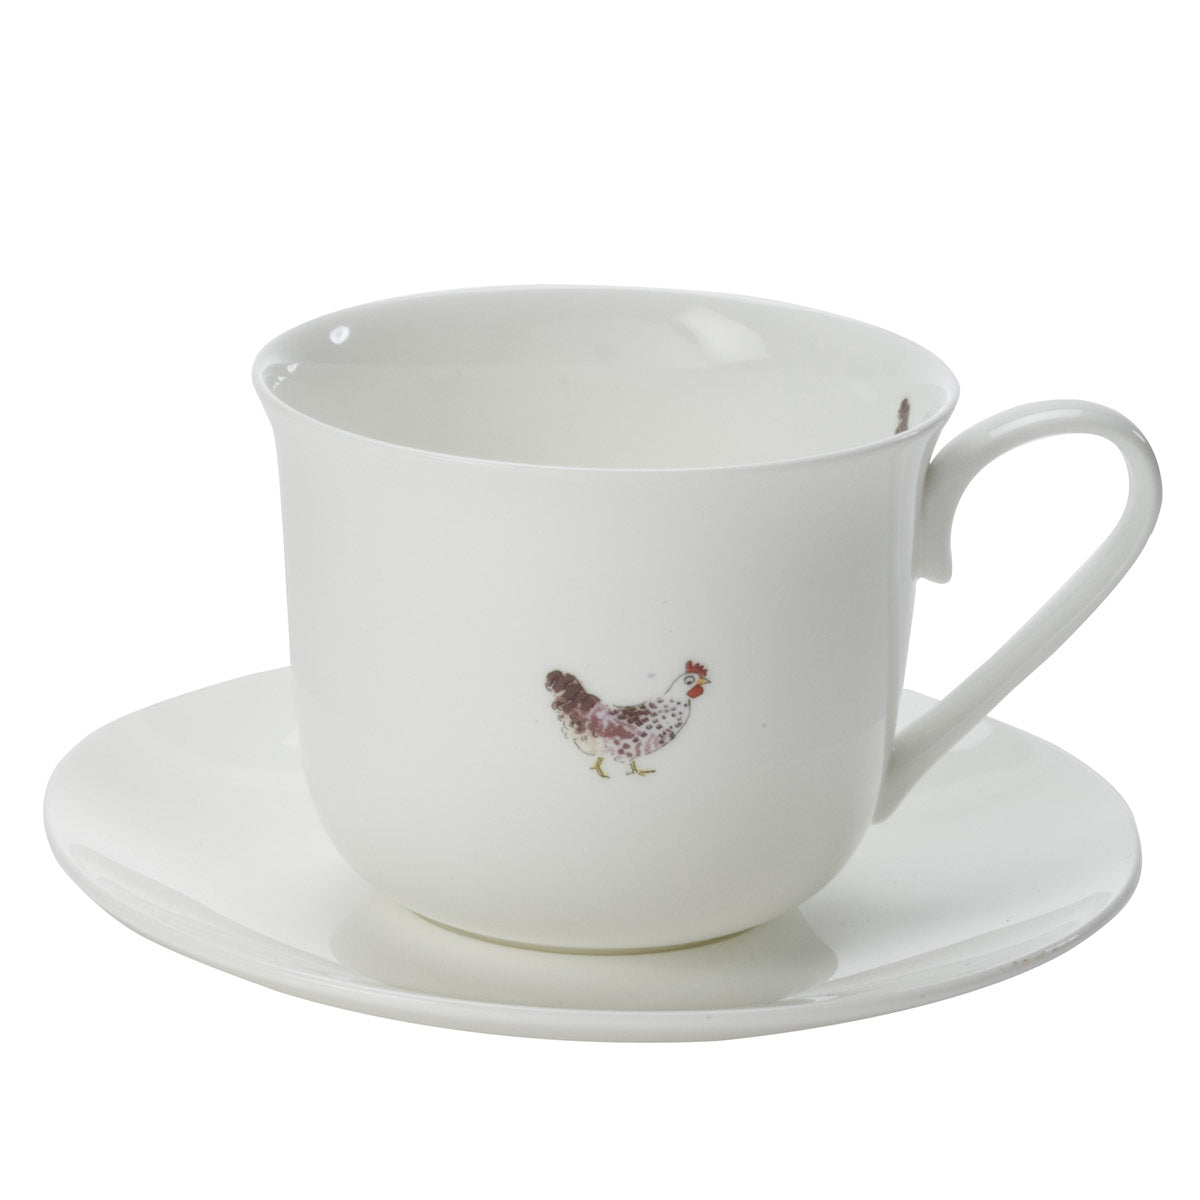 Chicken Teacup & Saucer